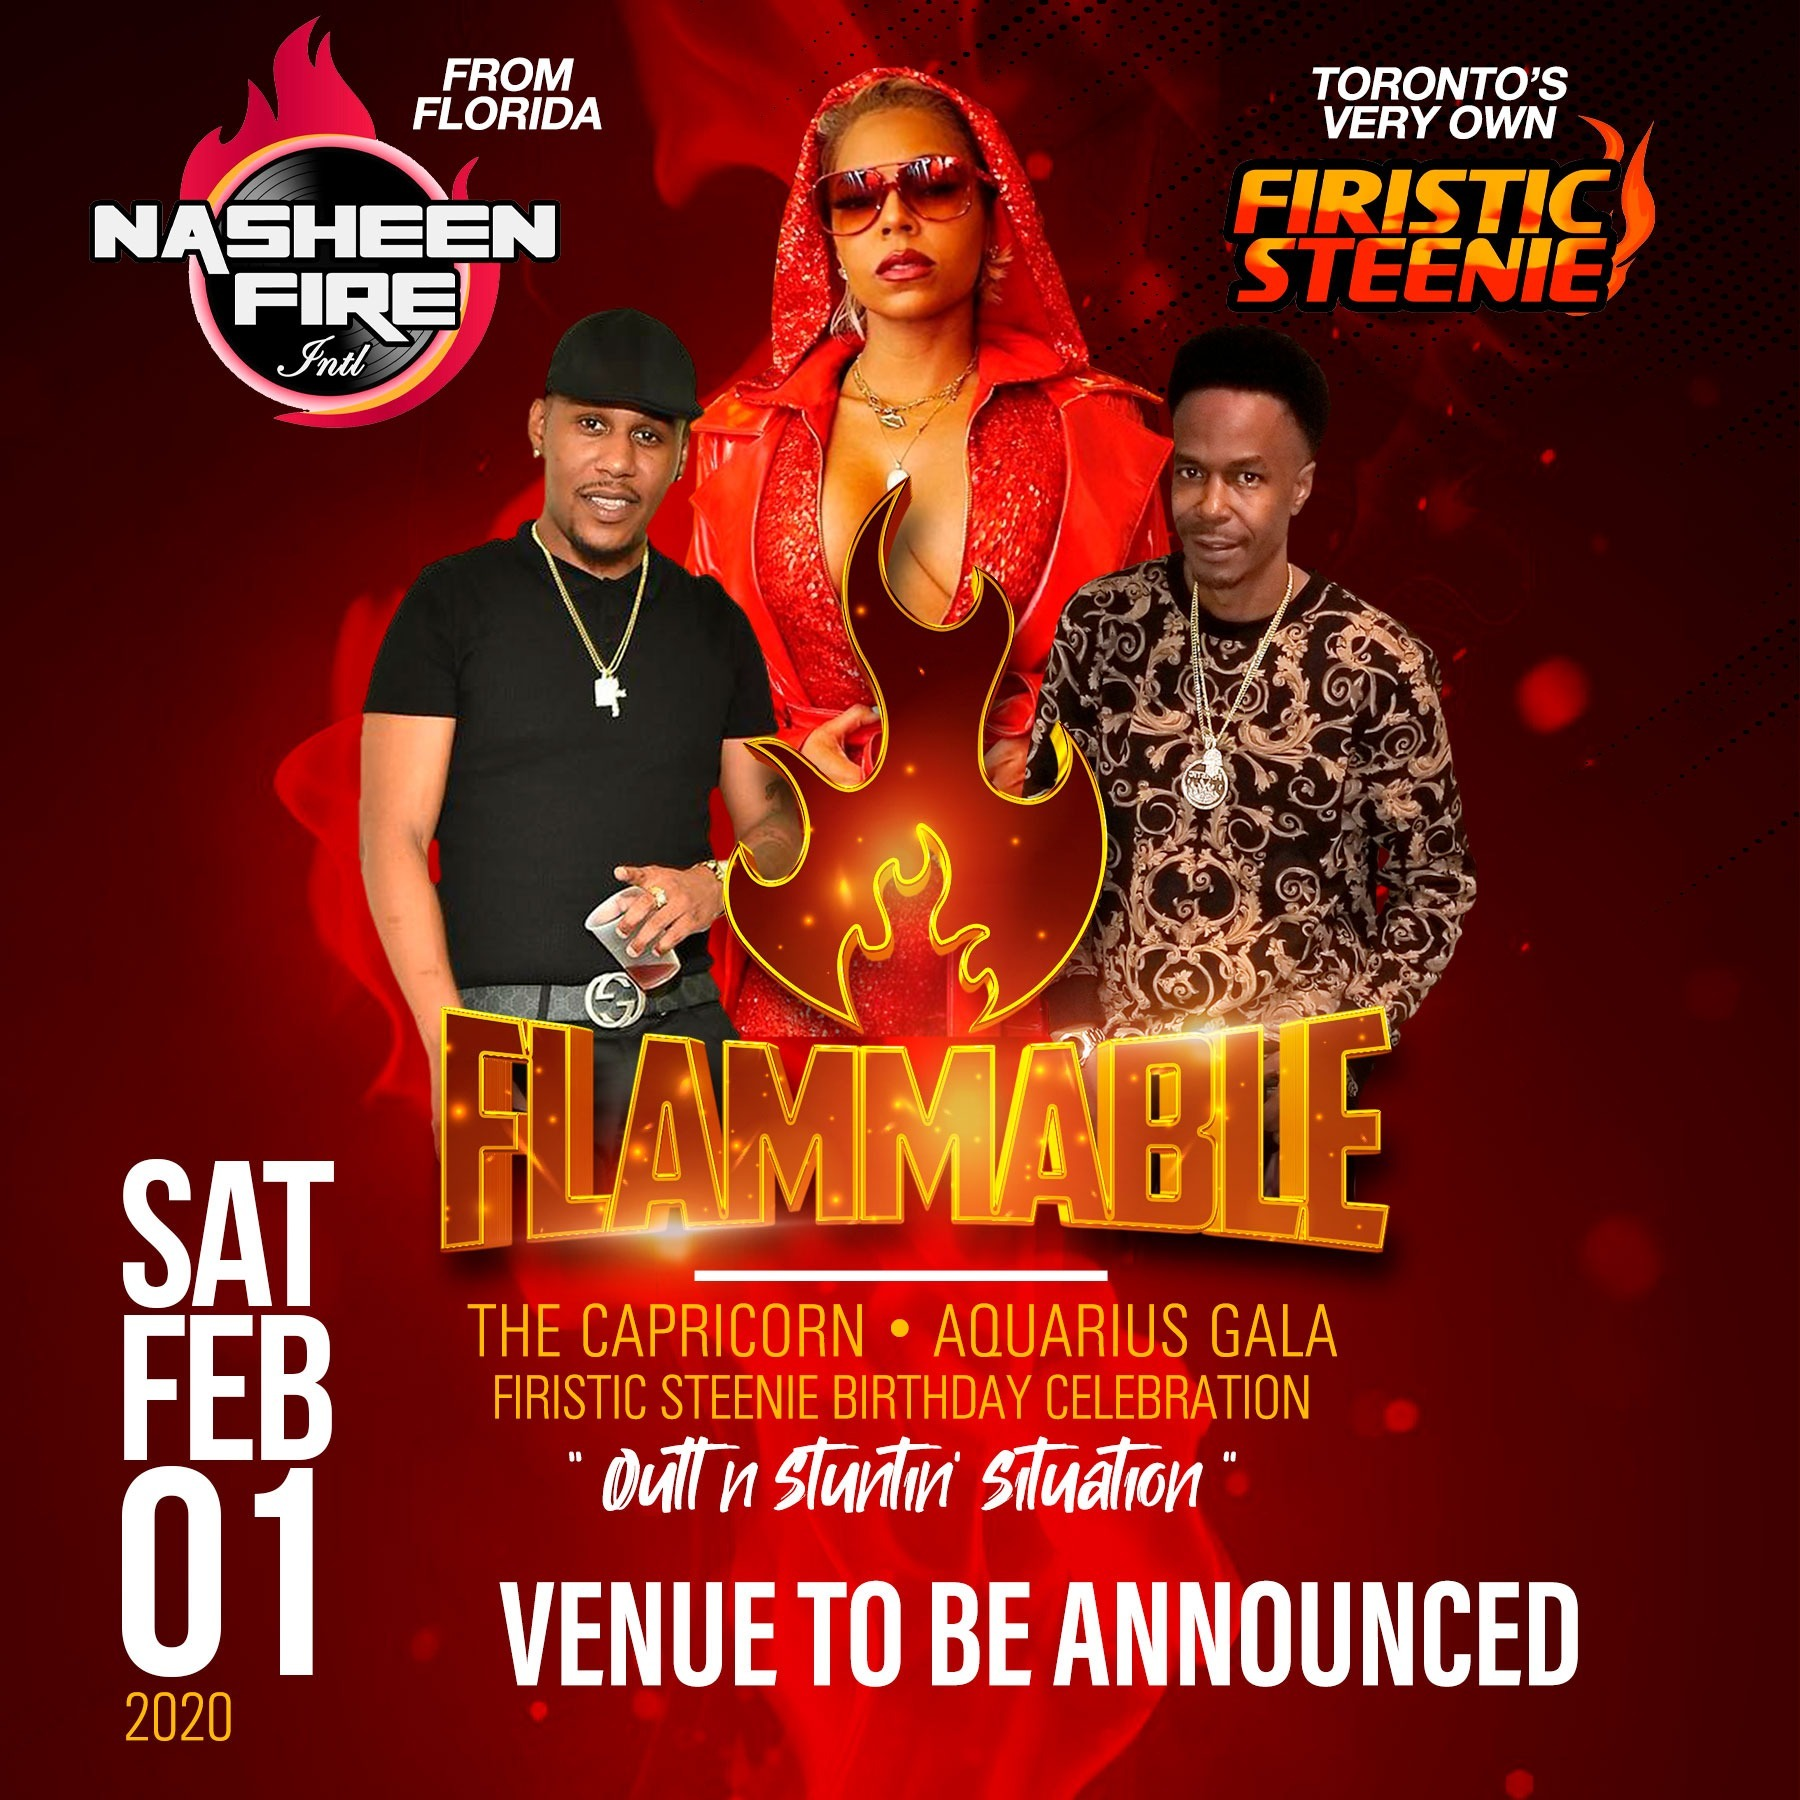 Flammable - Firistic Steenie Birthday Celebration